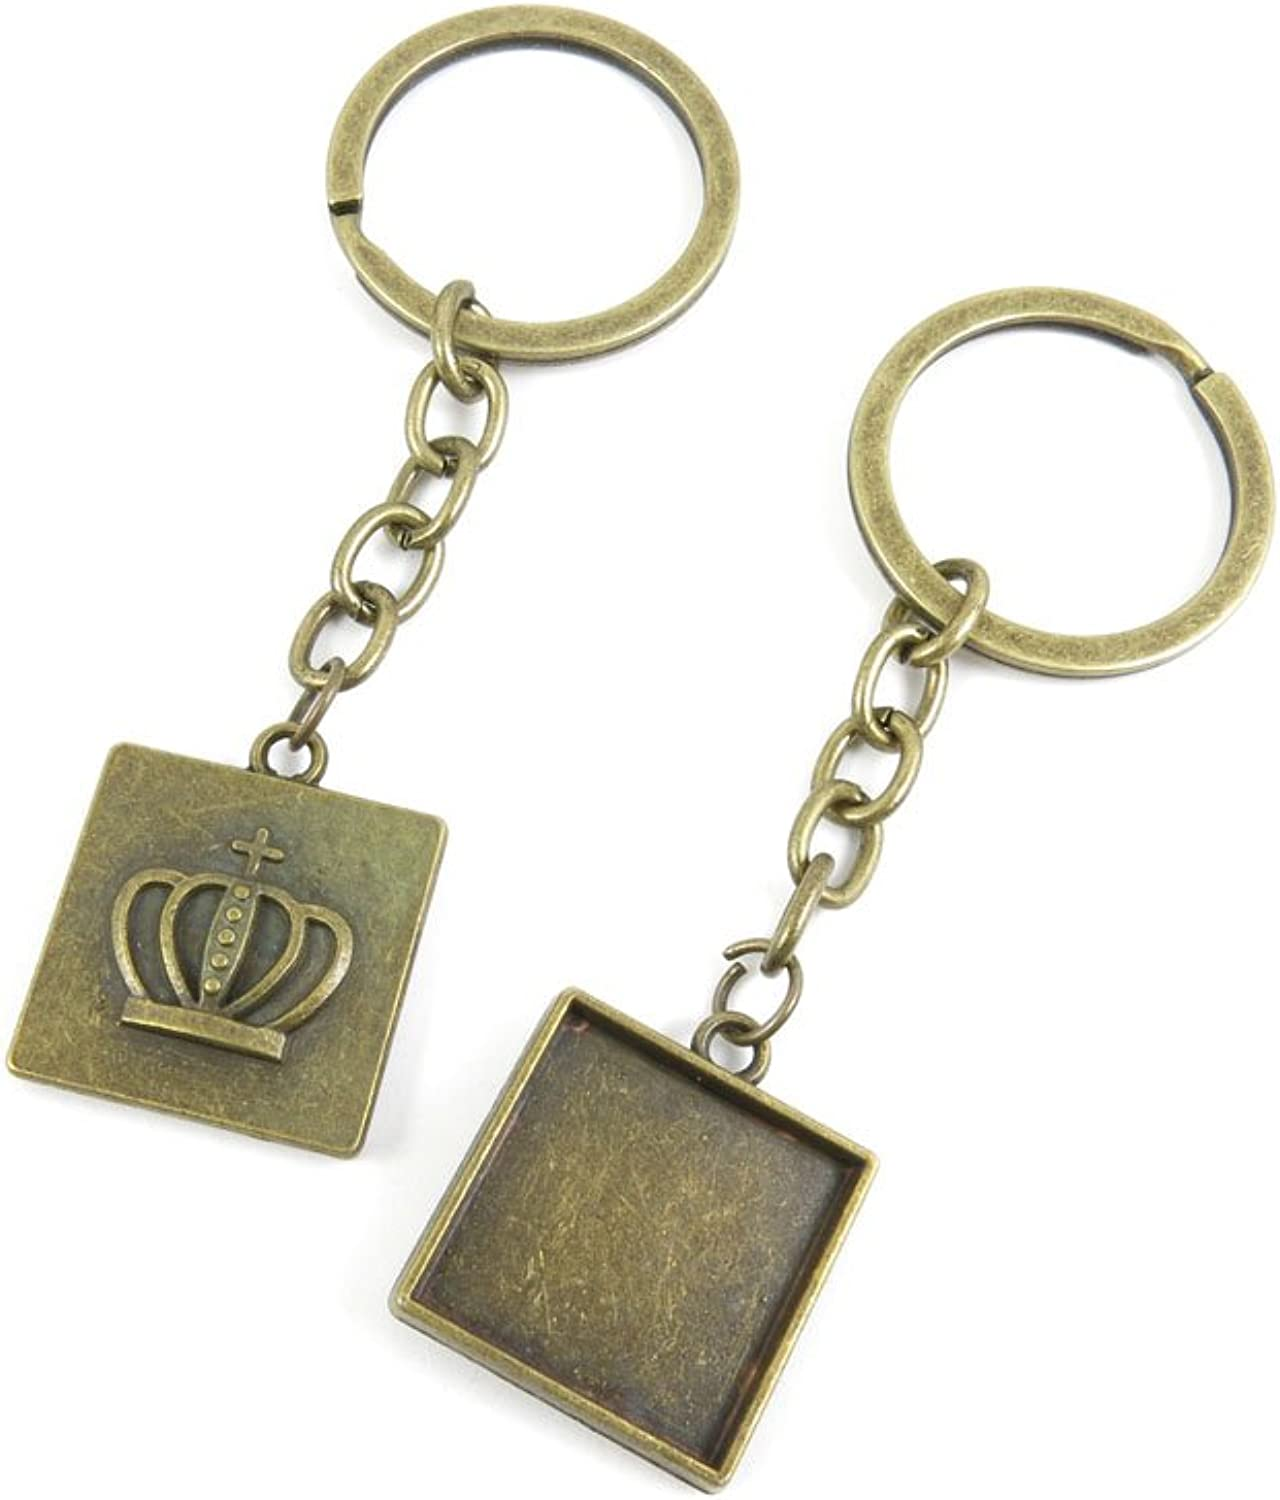 140 Pieces Fashion Jewelry Keyring Keychain Door Car Key Tag Ring Chain Supplier Supply Wholesale Bulk Lots H5HH6 Crown Cabochon Frame Blanks